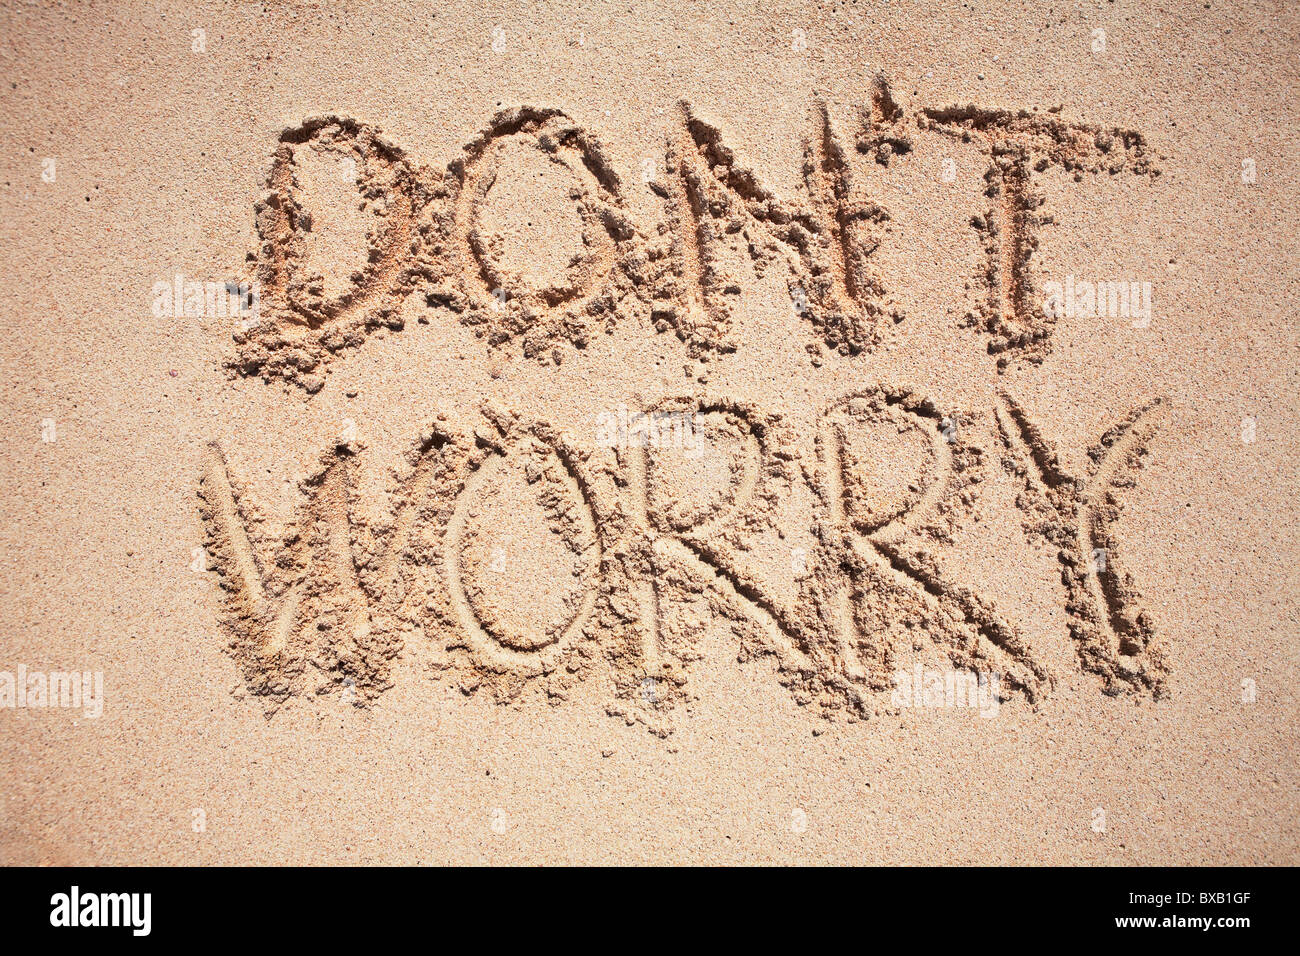 Text dont worry written on sand - Stock Image